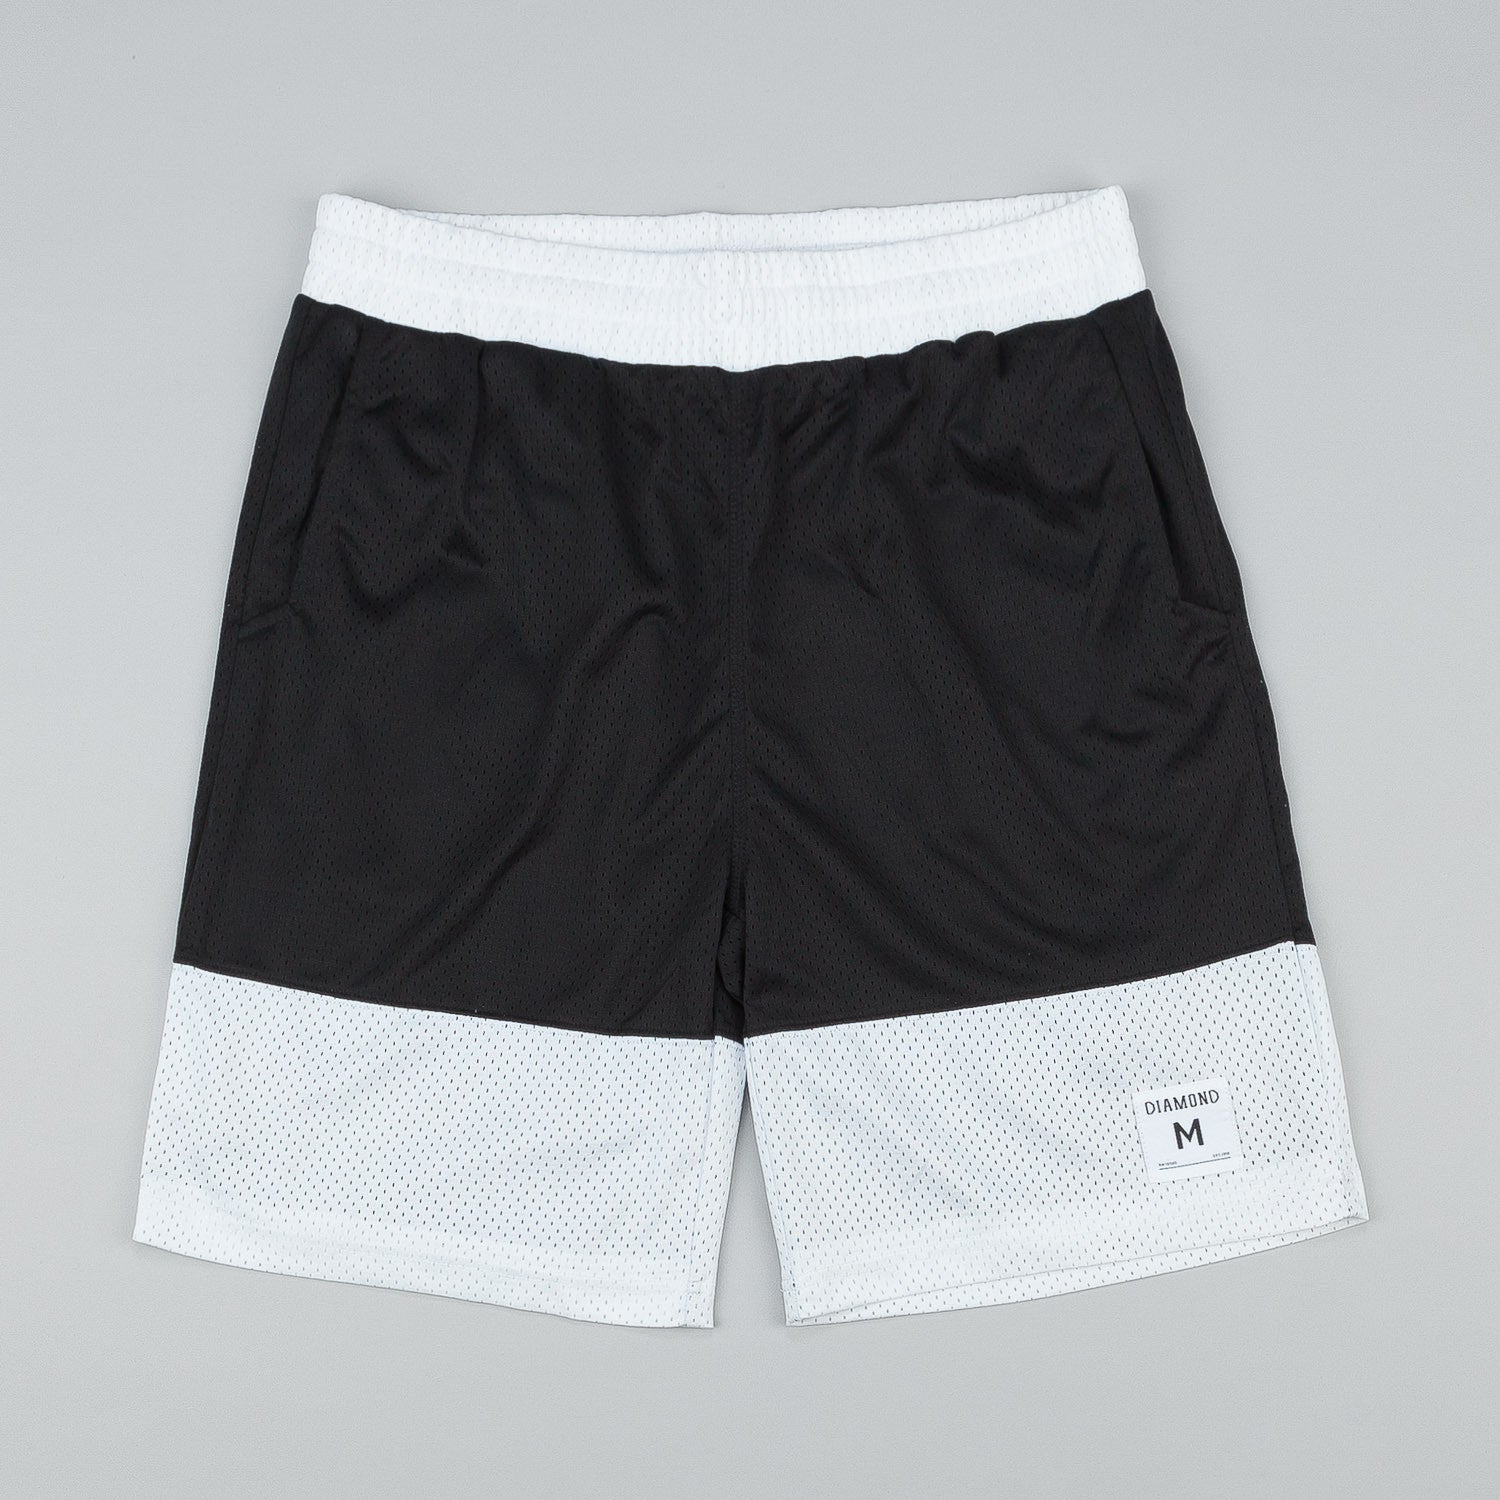 Diamond Arch Mesh Basketball Shorts